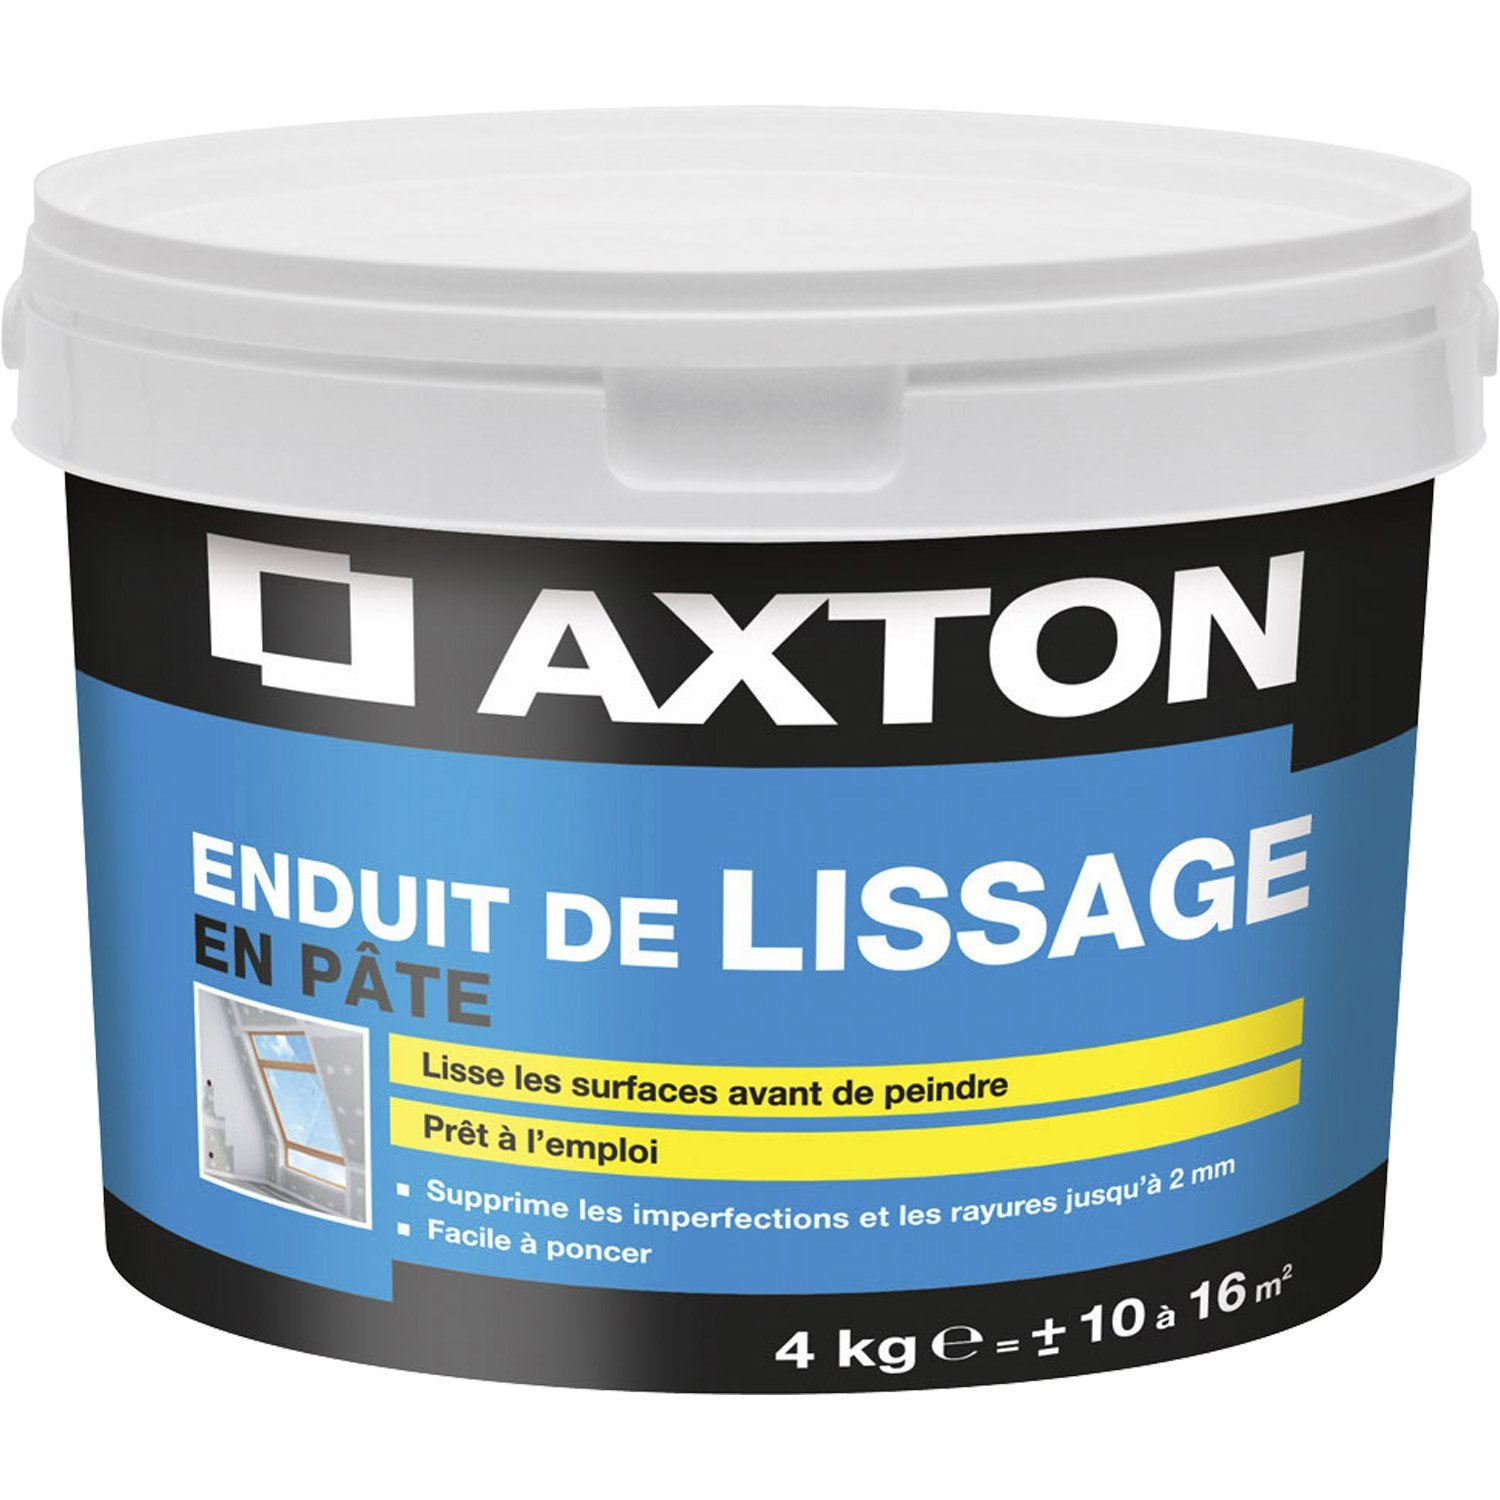 Enduit de lissage axton 4 kg leroy merlin for Video enduit de lissage